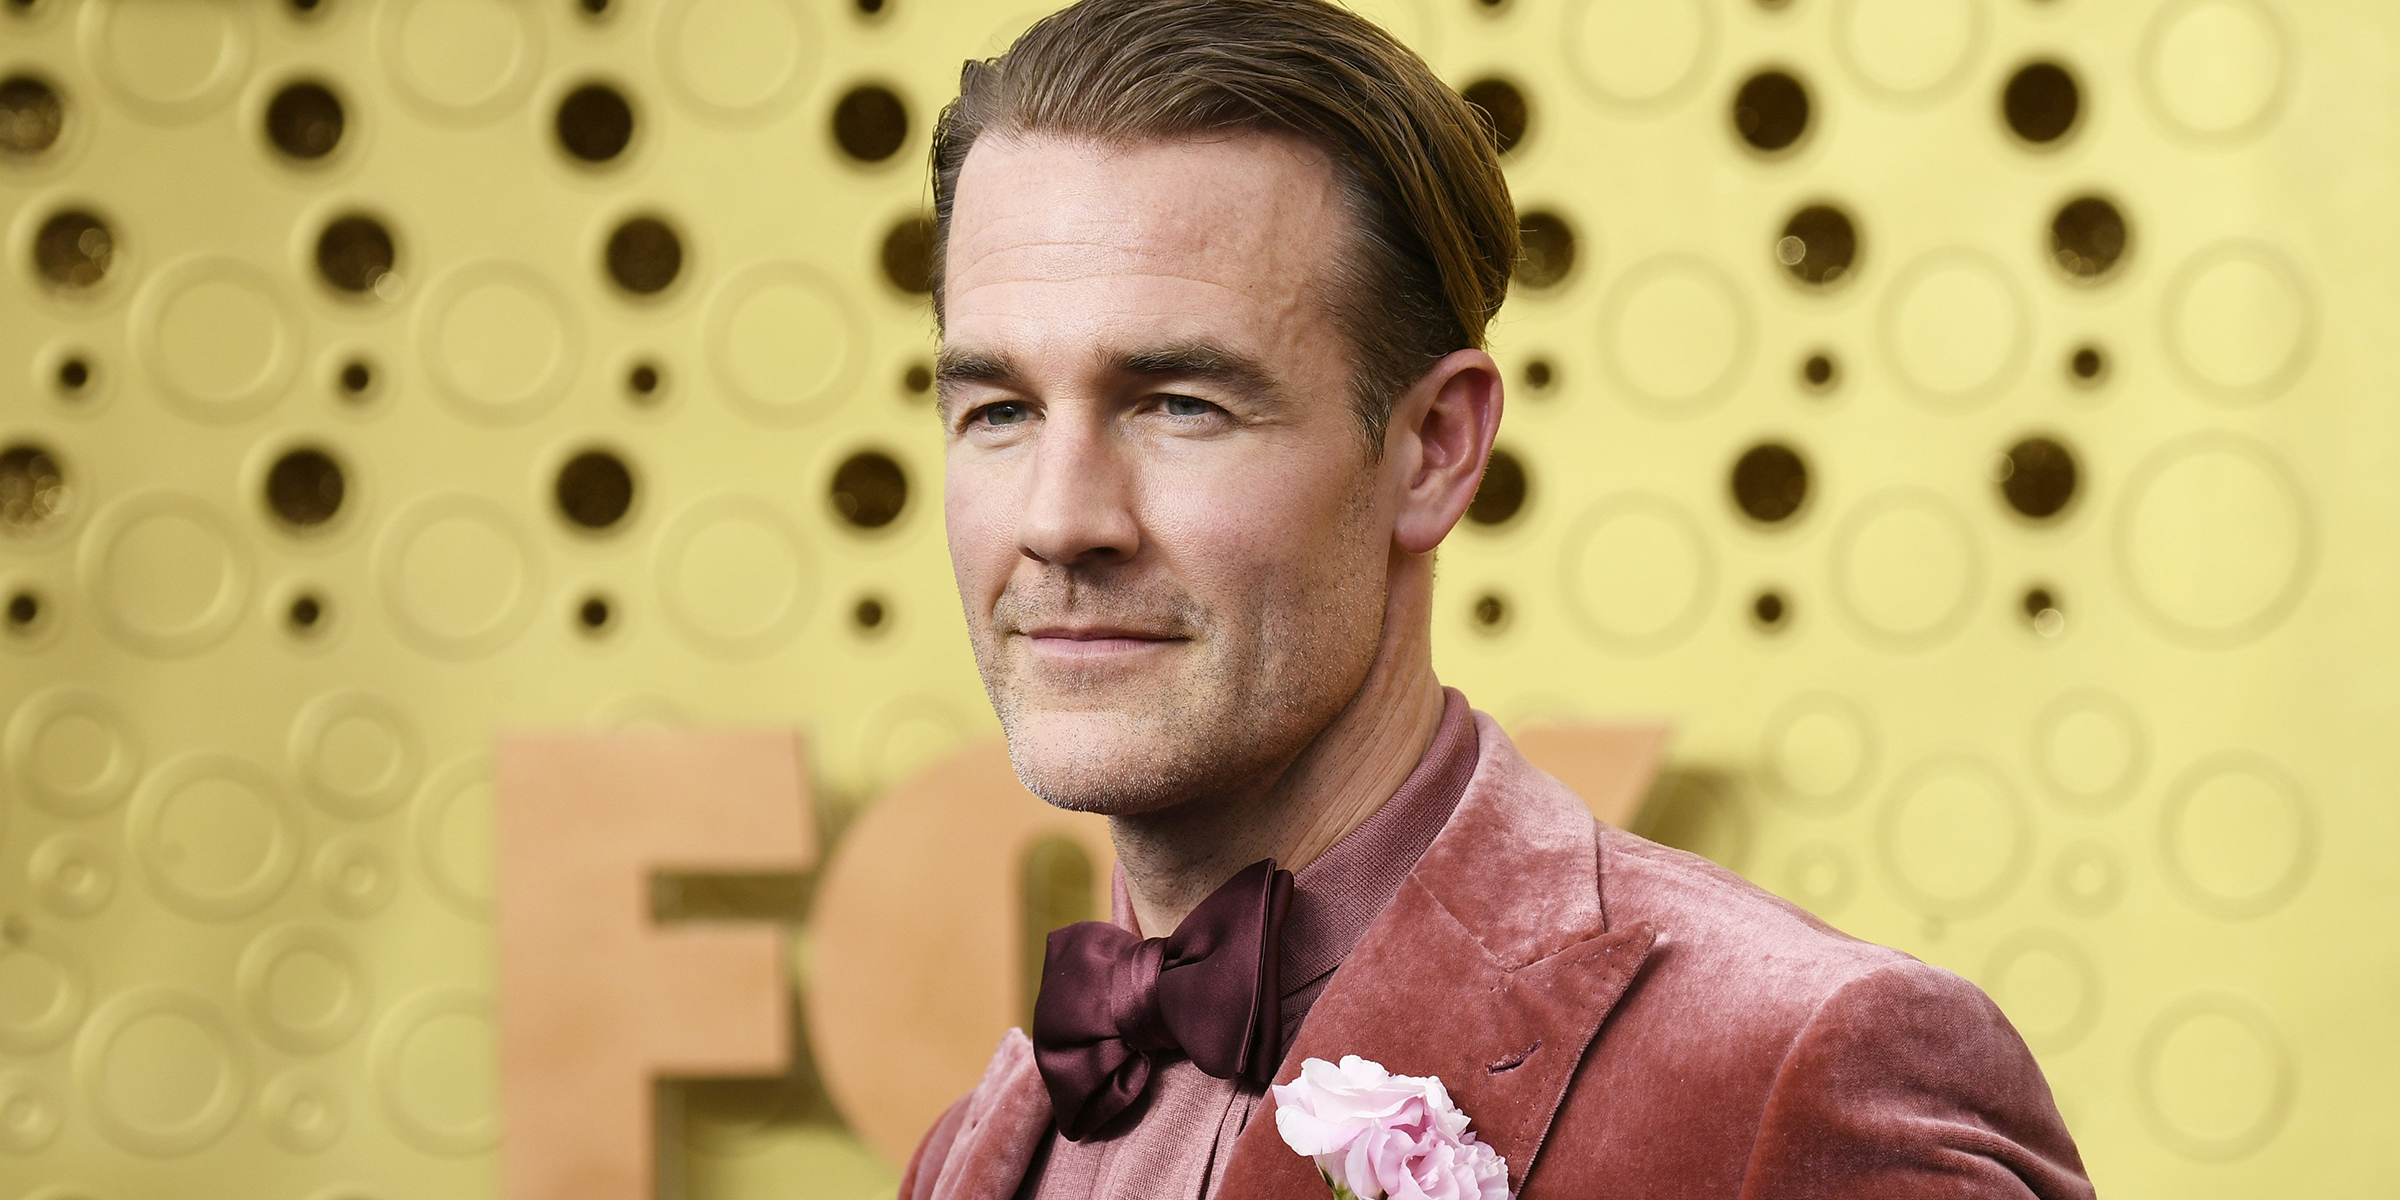 James Van Der Beek proudly shows off his ripped transformation